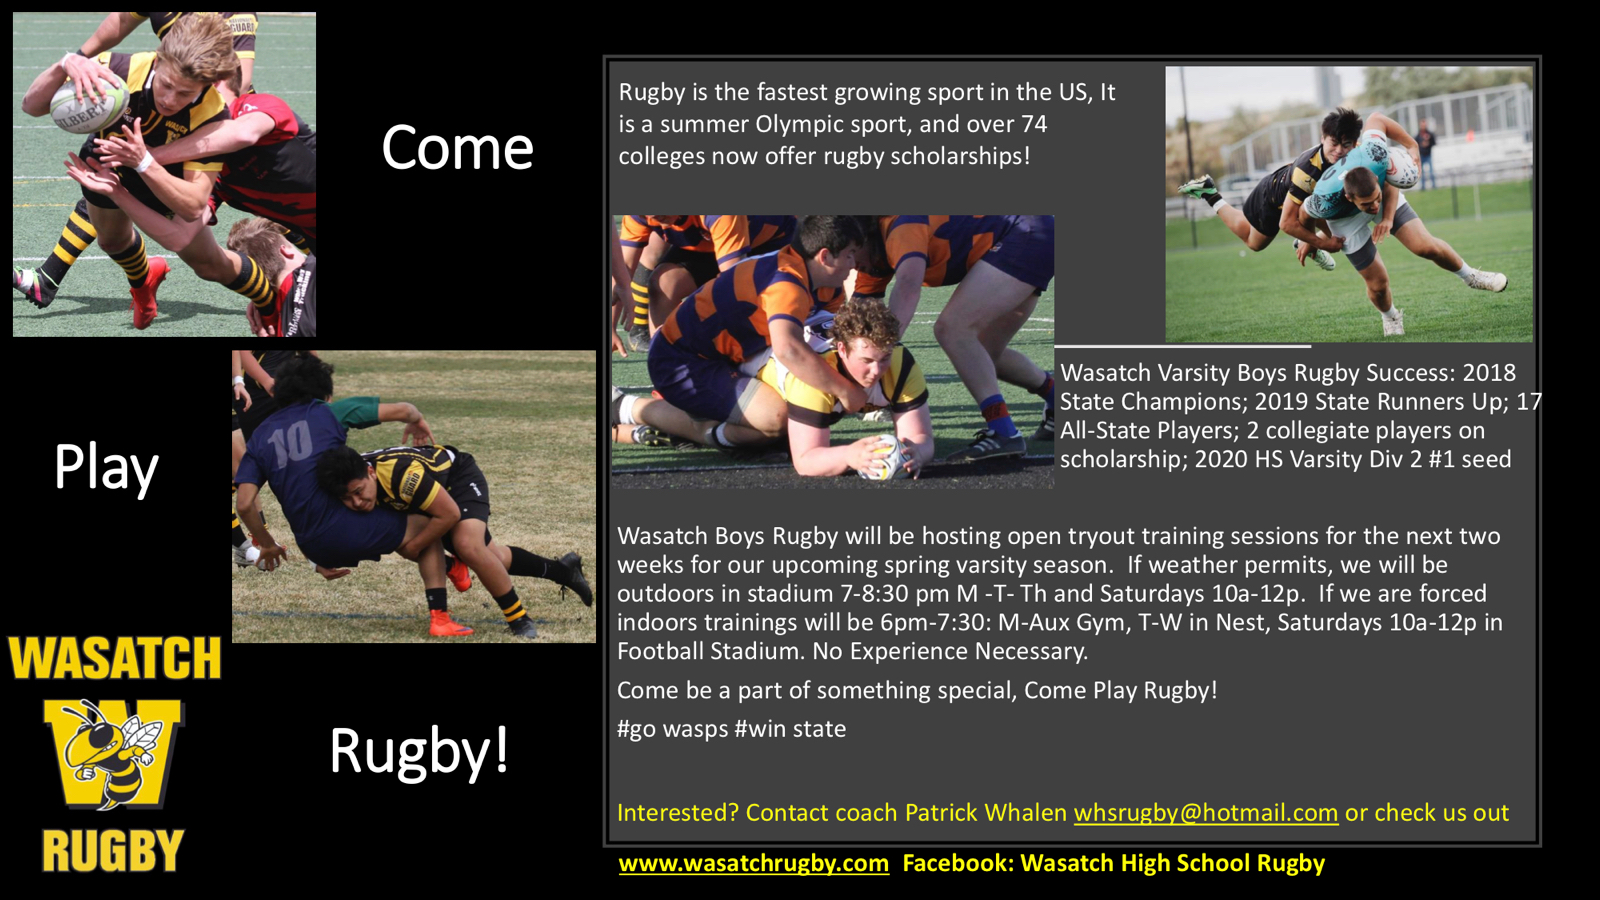 Wasatch High School Rugby tryouts